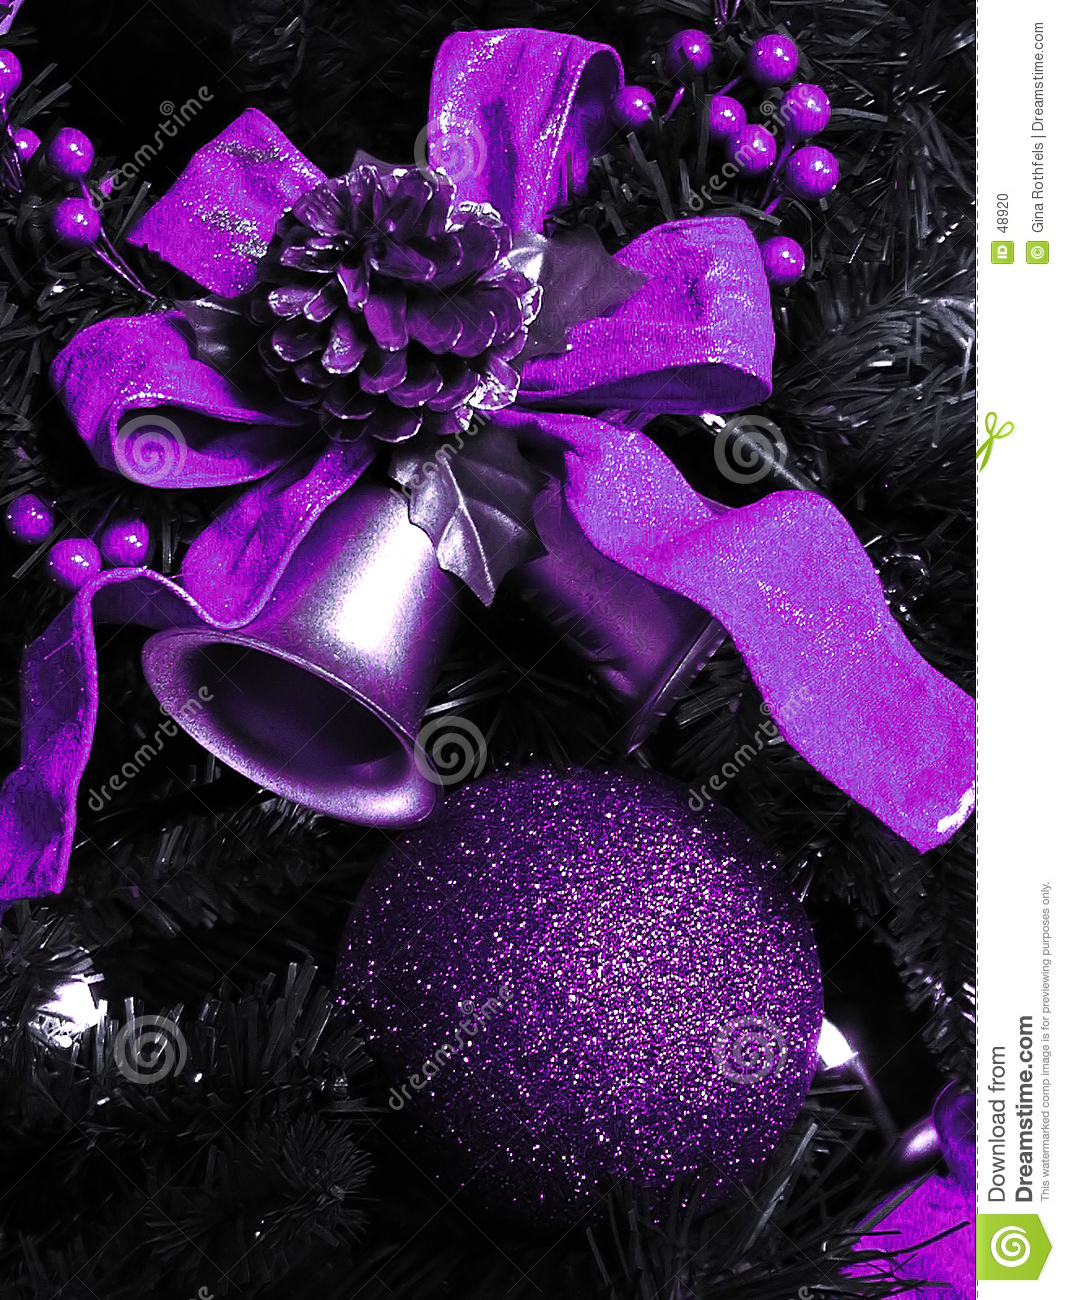 purple christmas decorations - Purple Christmas Decorations